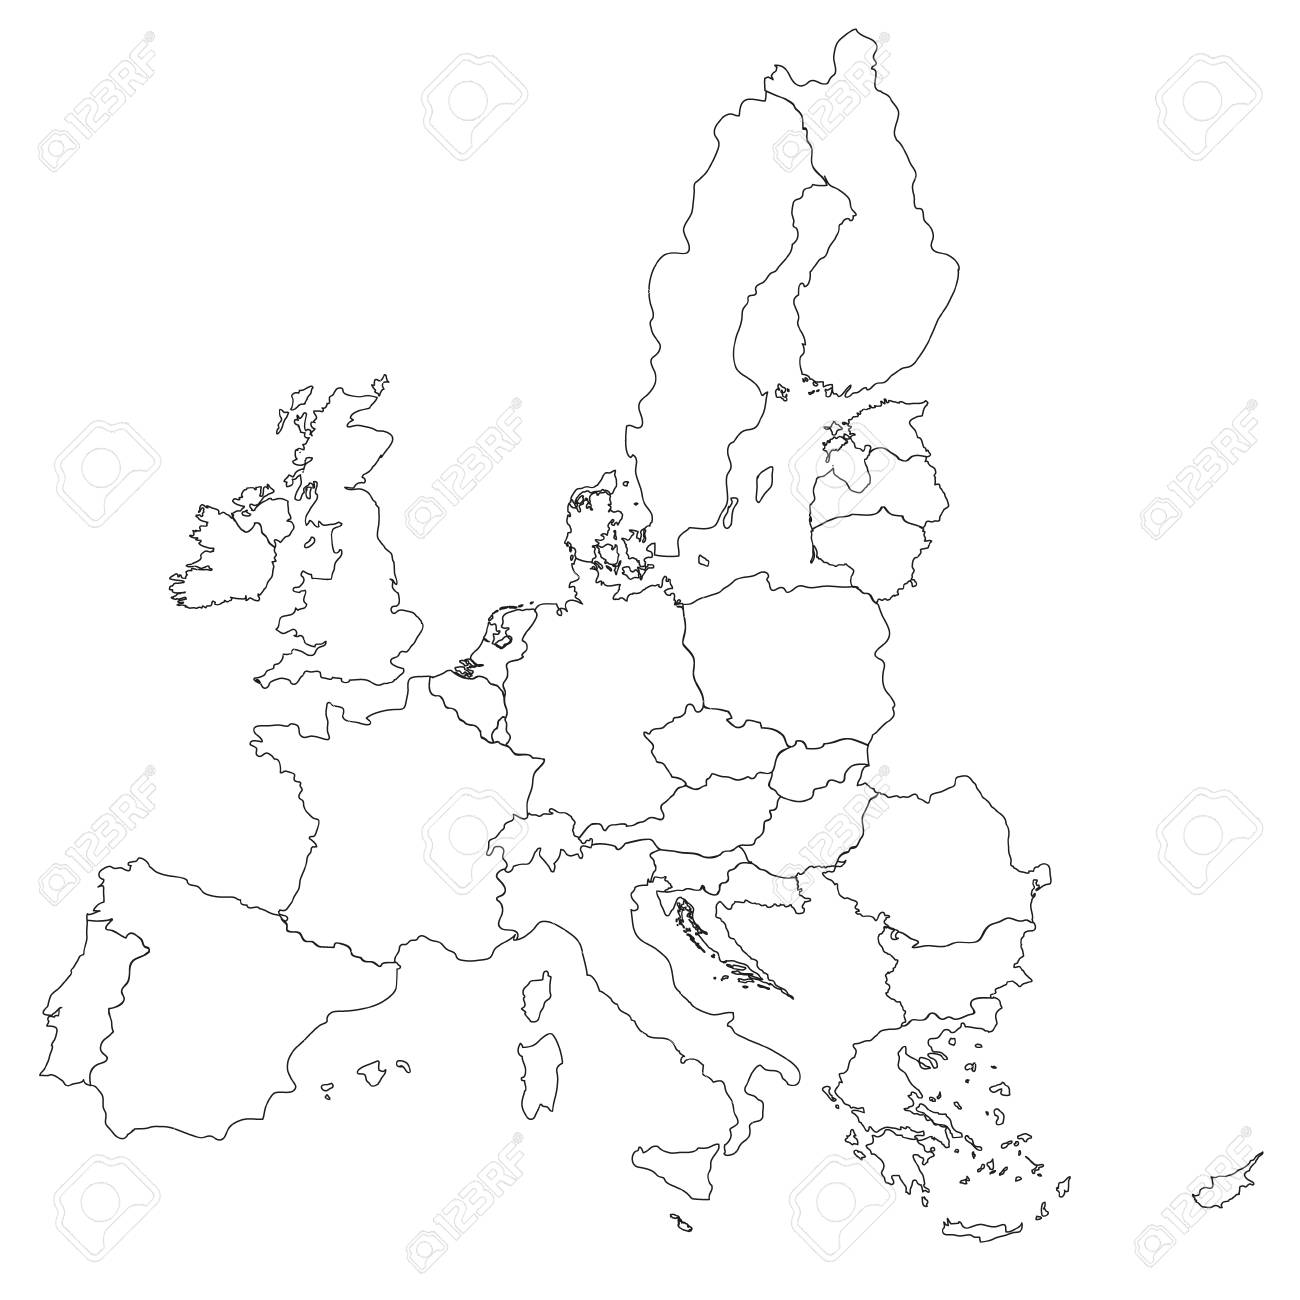 Picture of: Simple All European Union Countries In One Outline Map Eps10 Royalty Free Cliparts Vectors And Stock Illustration Image 75411202